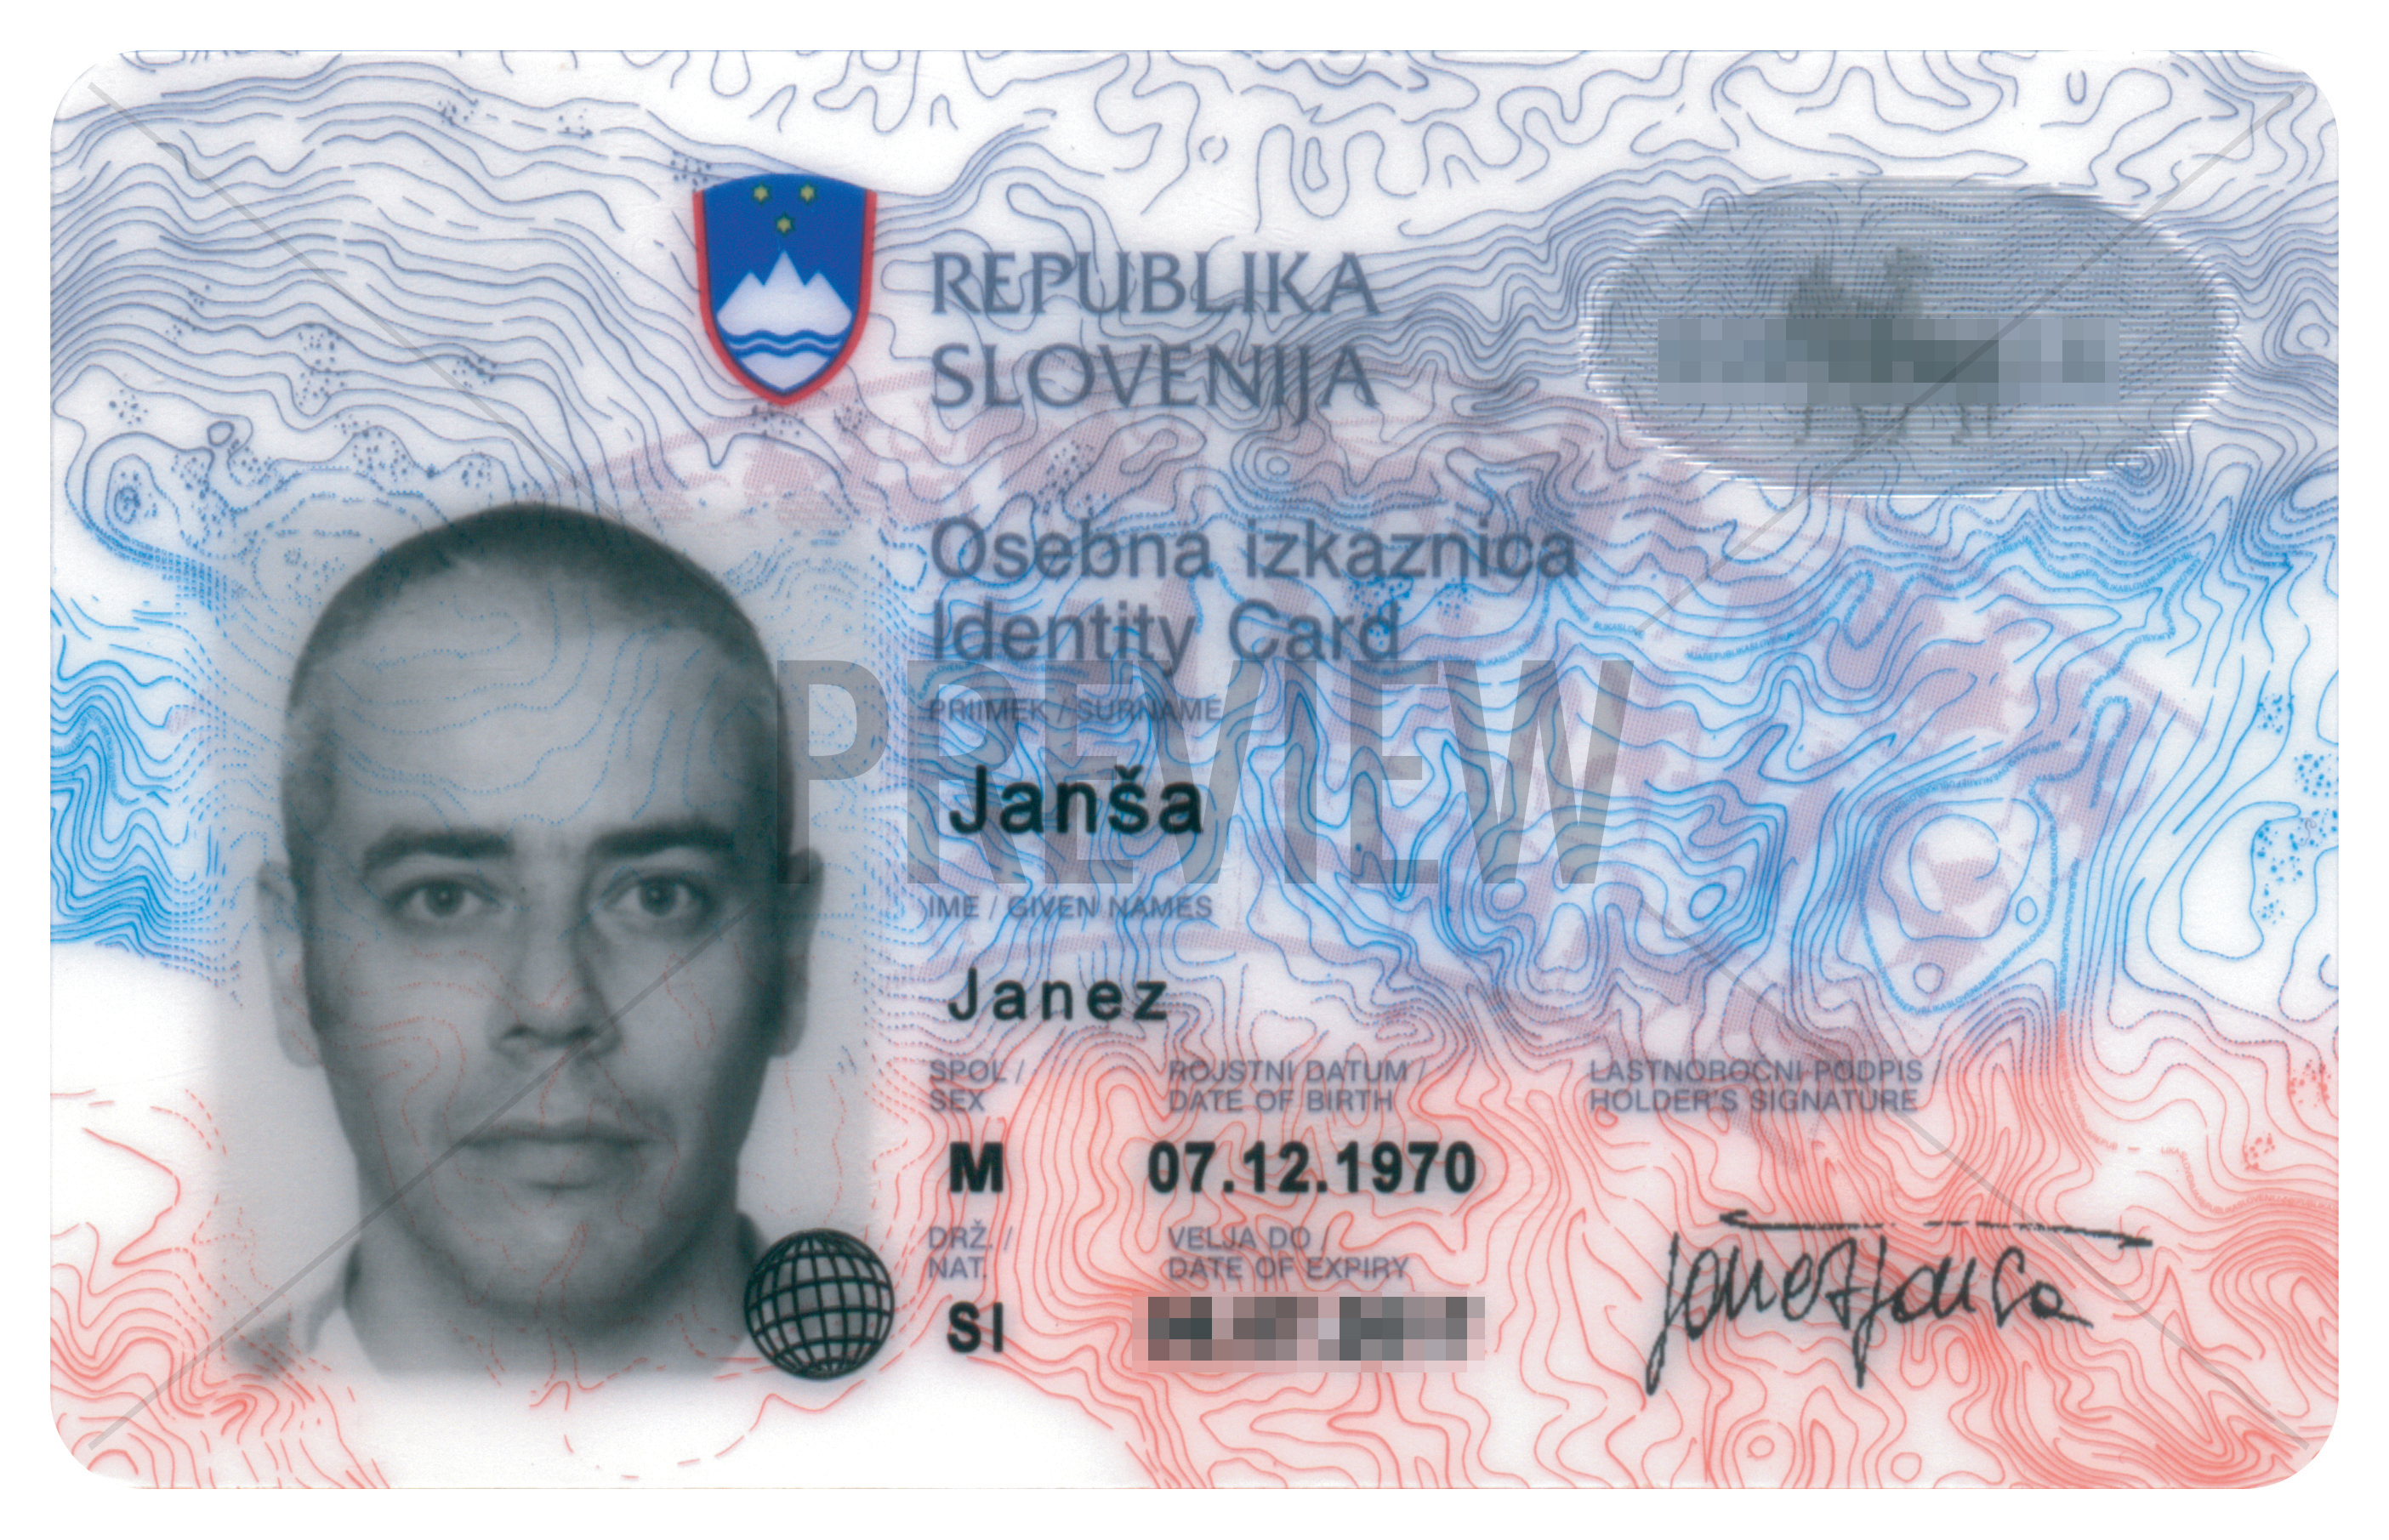 002199616 (Identity Card), Ljubljana, 2007. Print on plastic